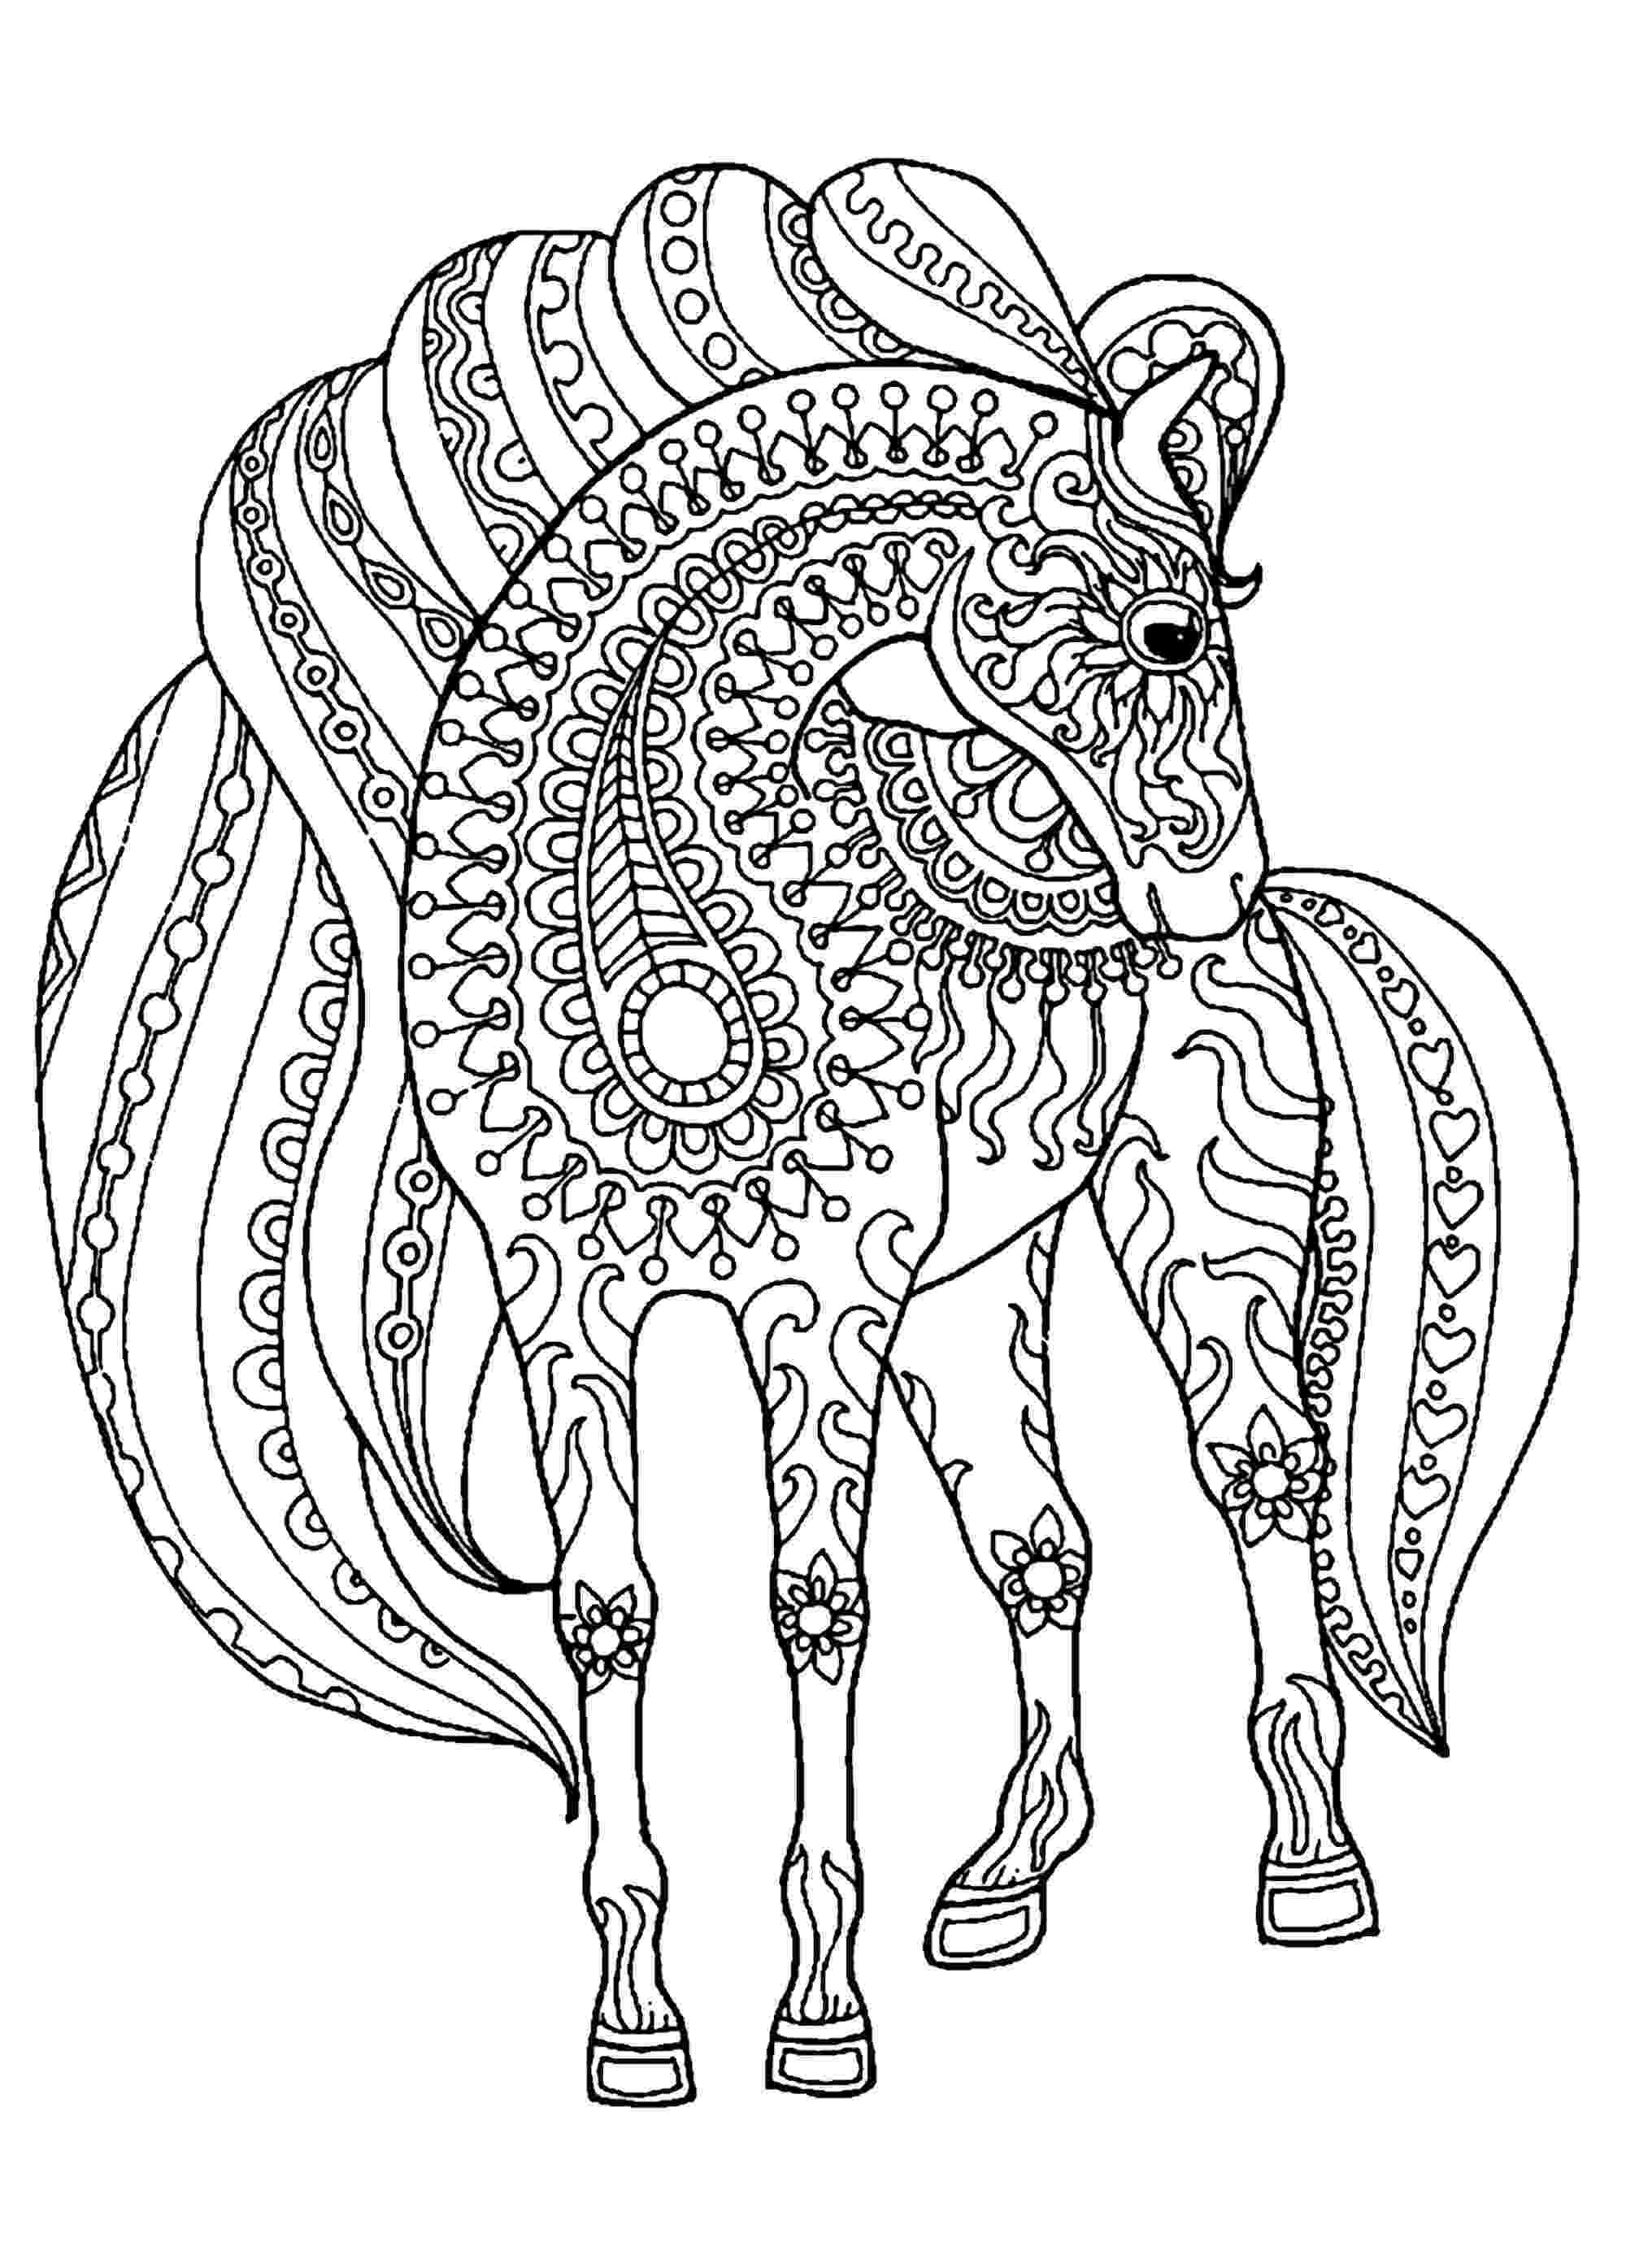 horse printable coloring pages woman and mare horse coloring page free printable printable horse pages coloring